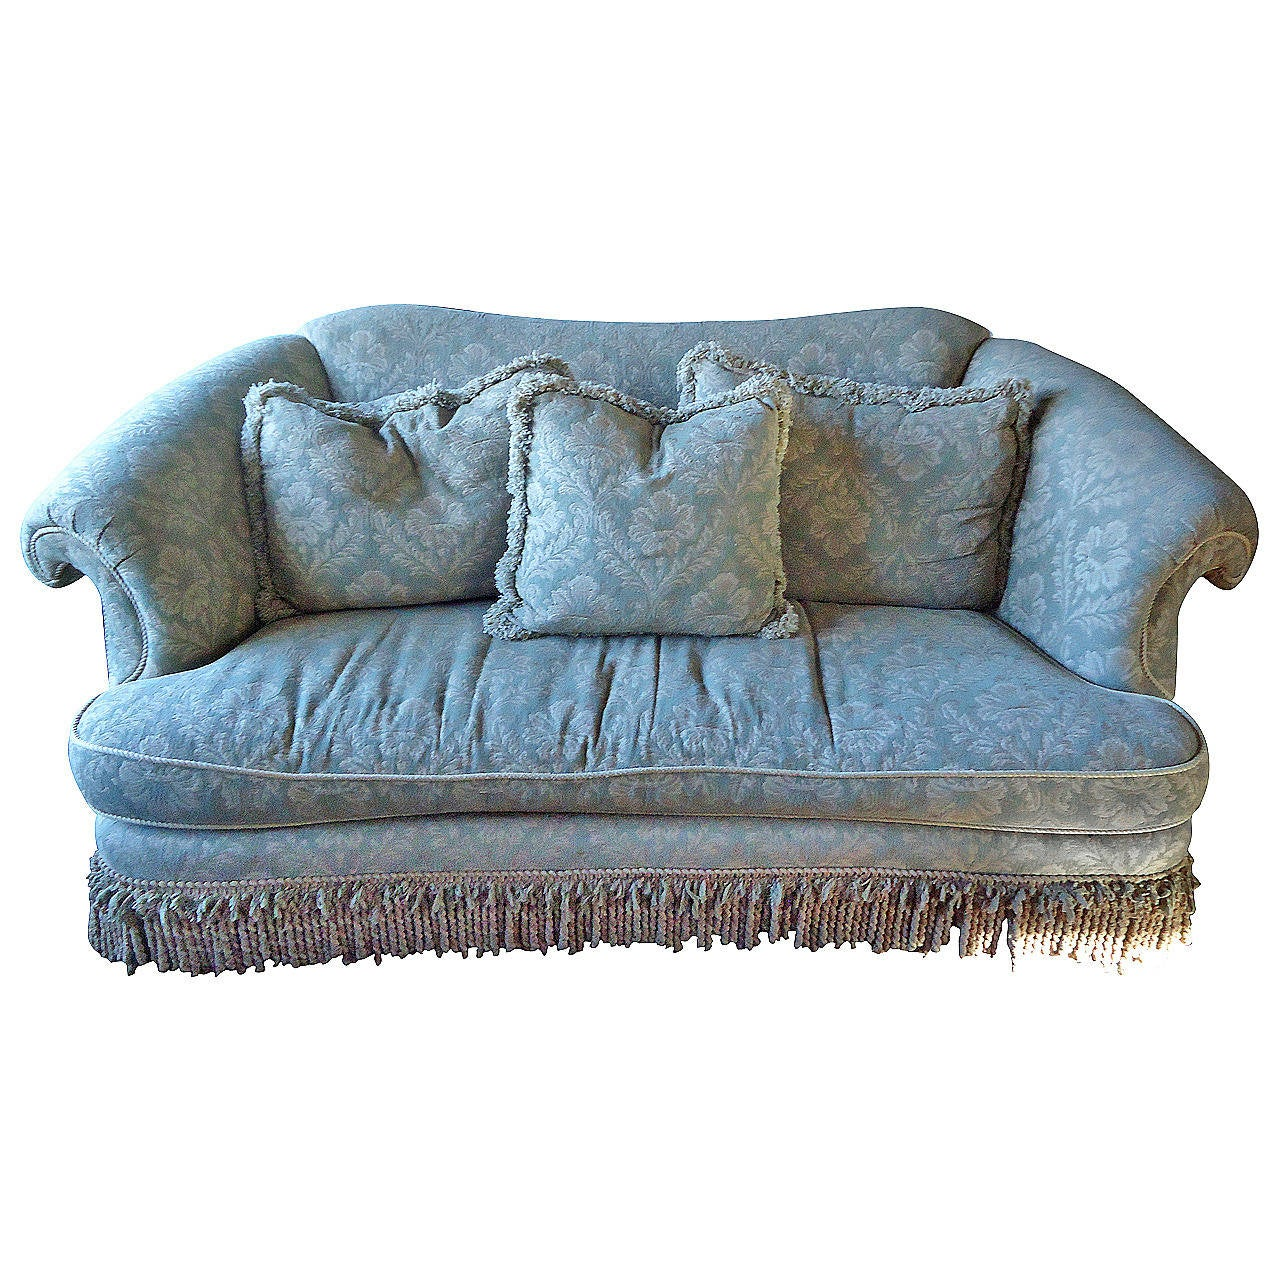 Sumptuous Large And Curvy Down Sofa At 1stdibs